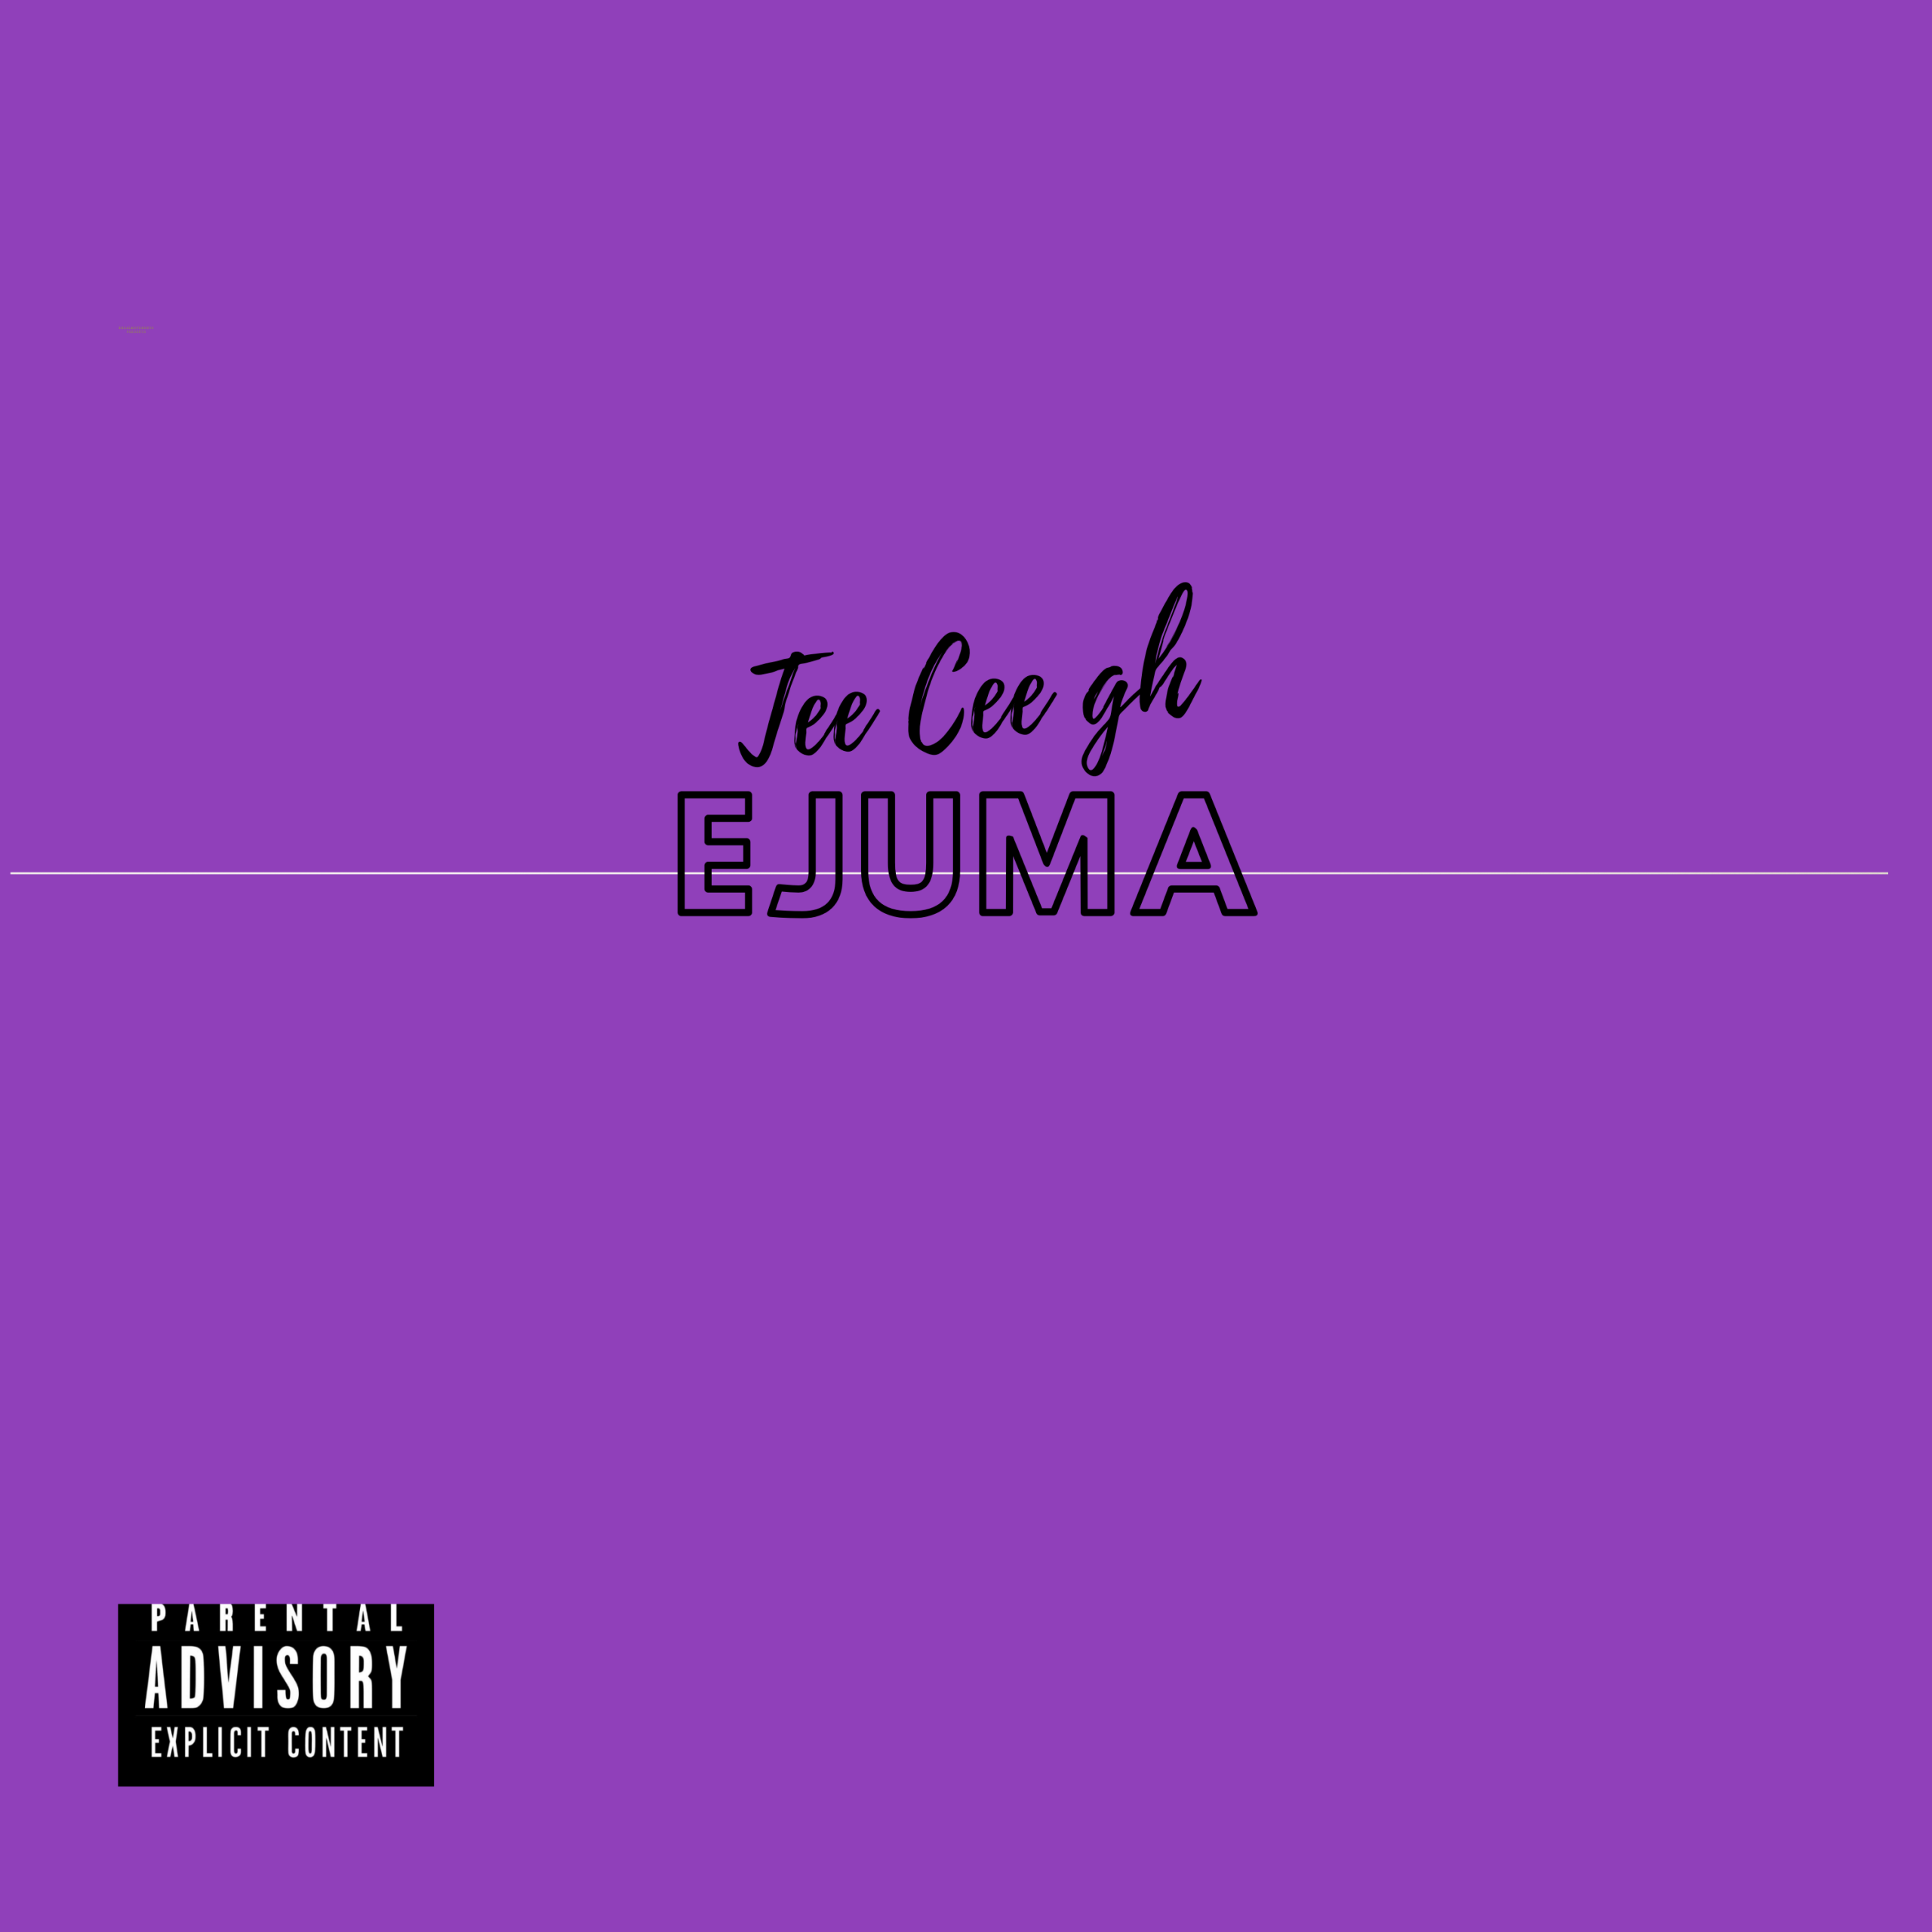 Download Music From Tee Cee Gh - Ejuma (Work)